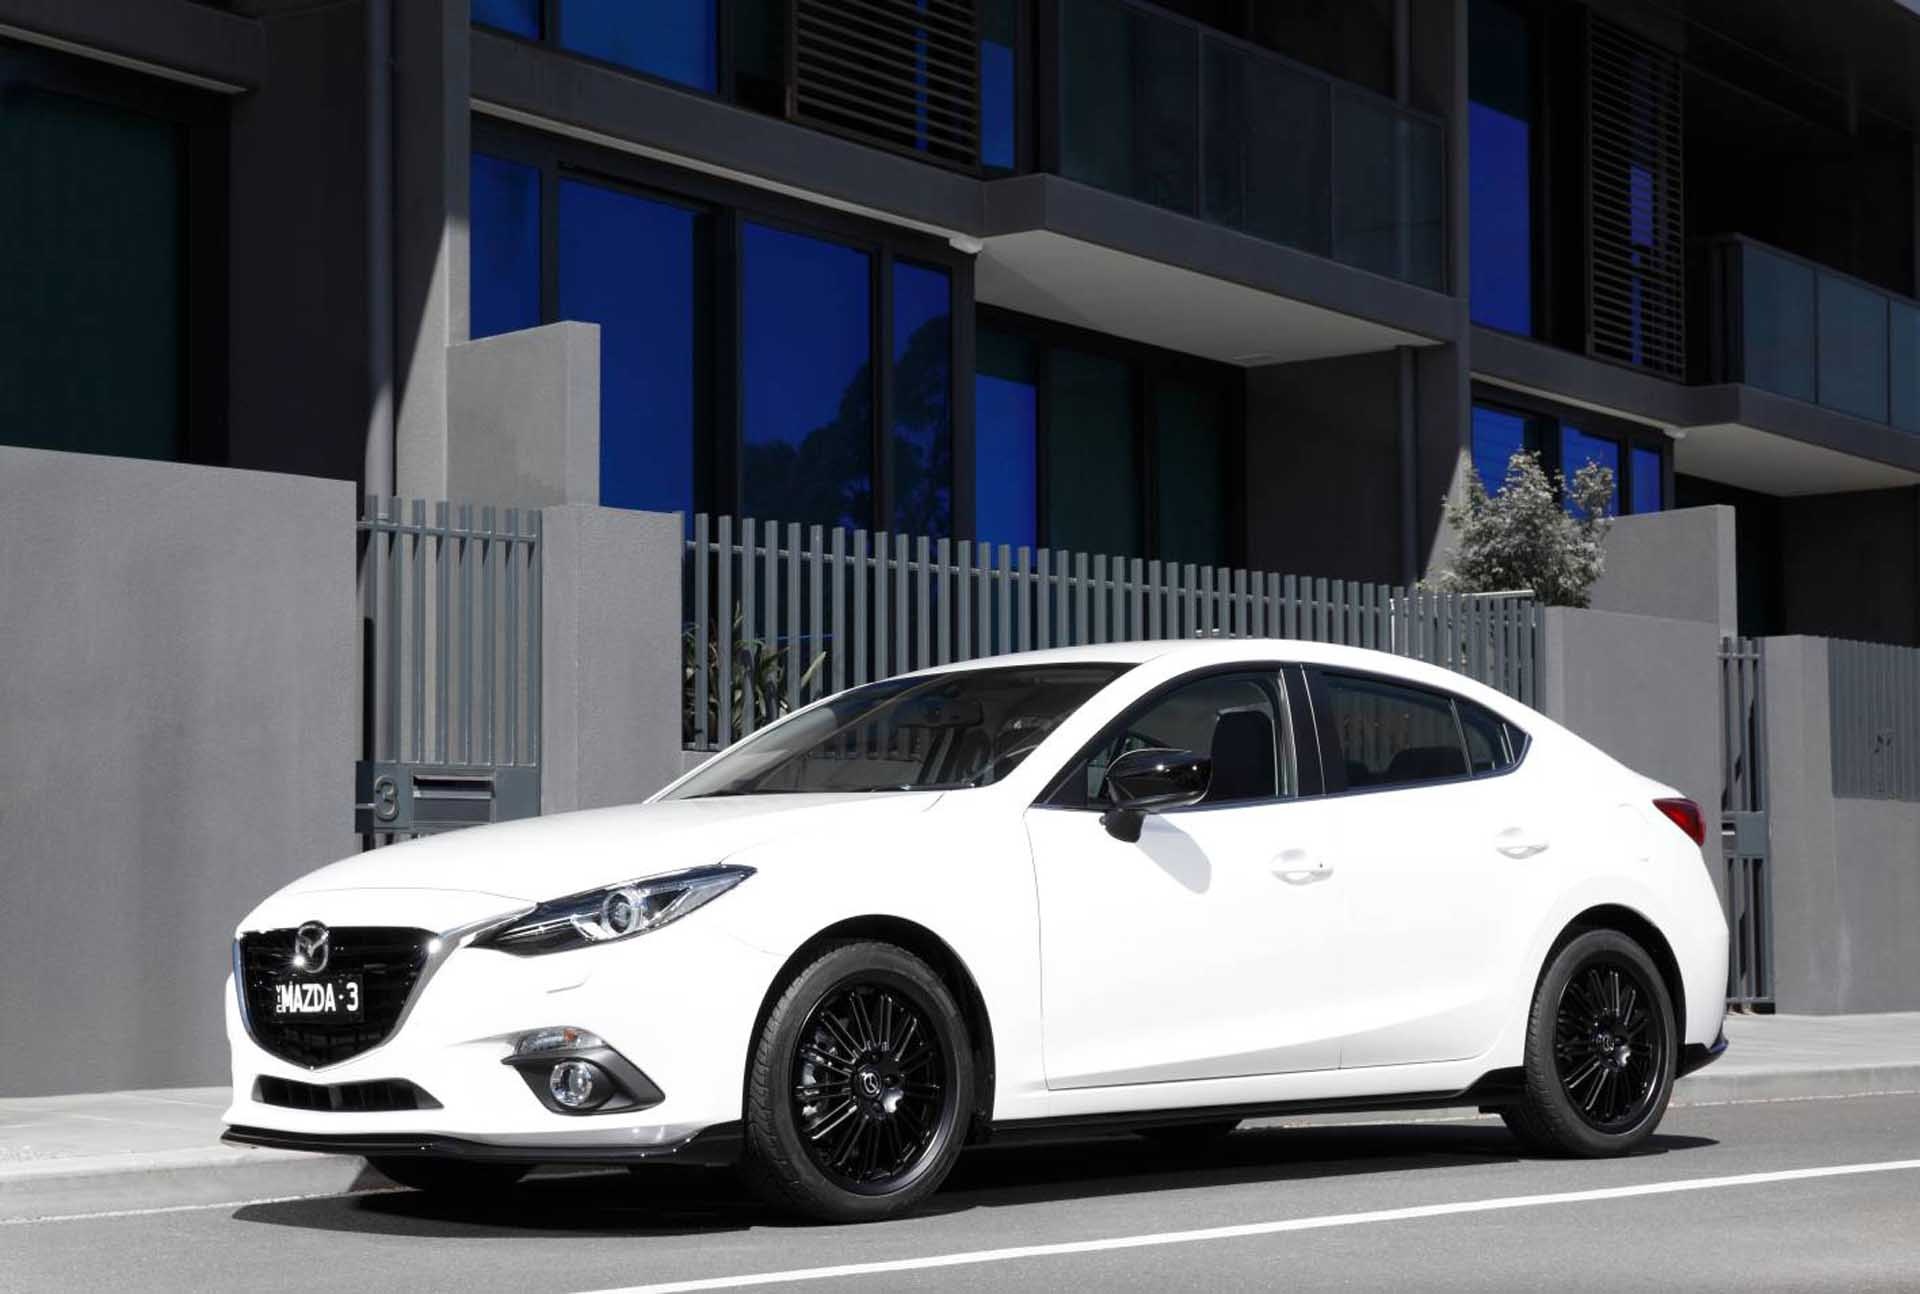 Mazda 3 Latest HD Wallpapers Free Download